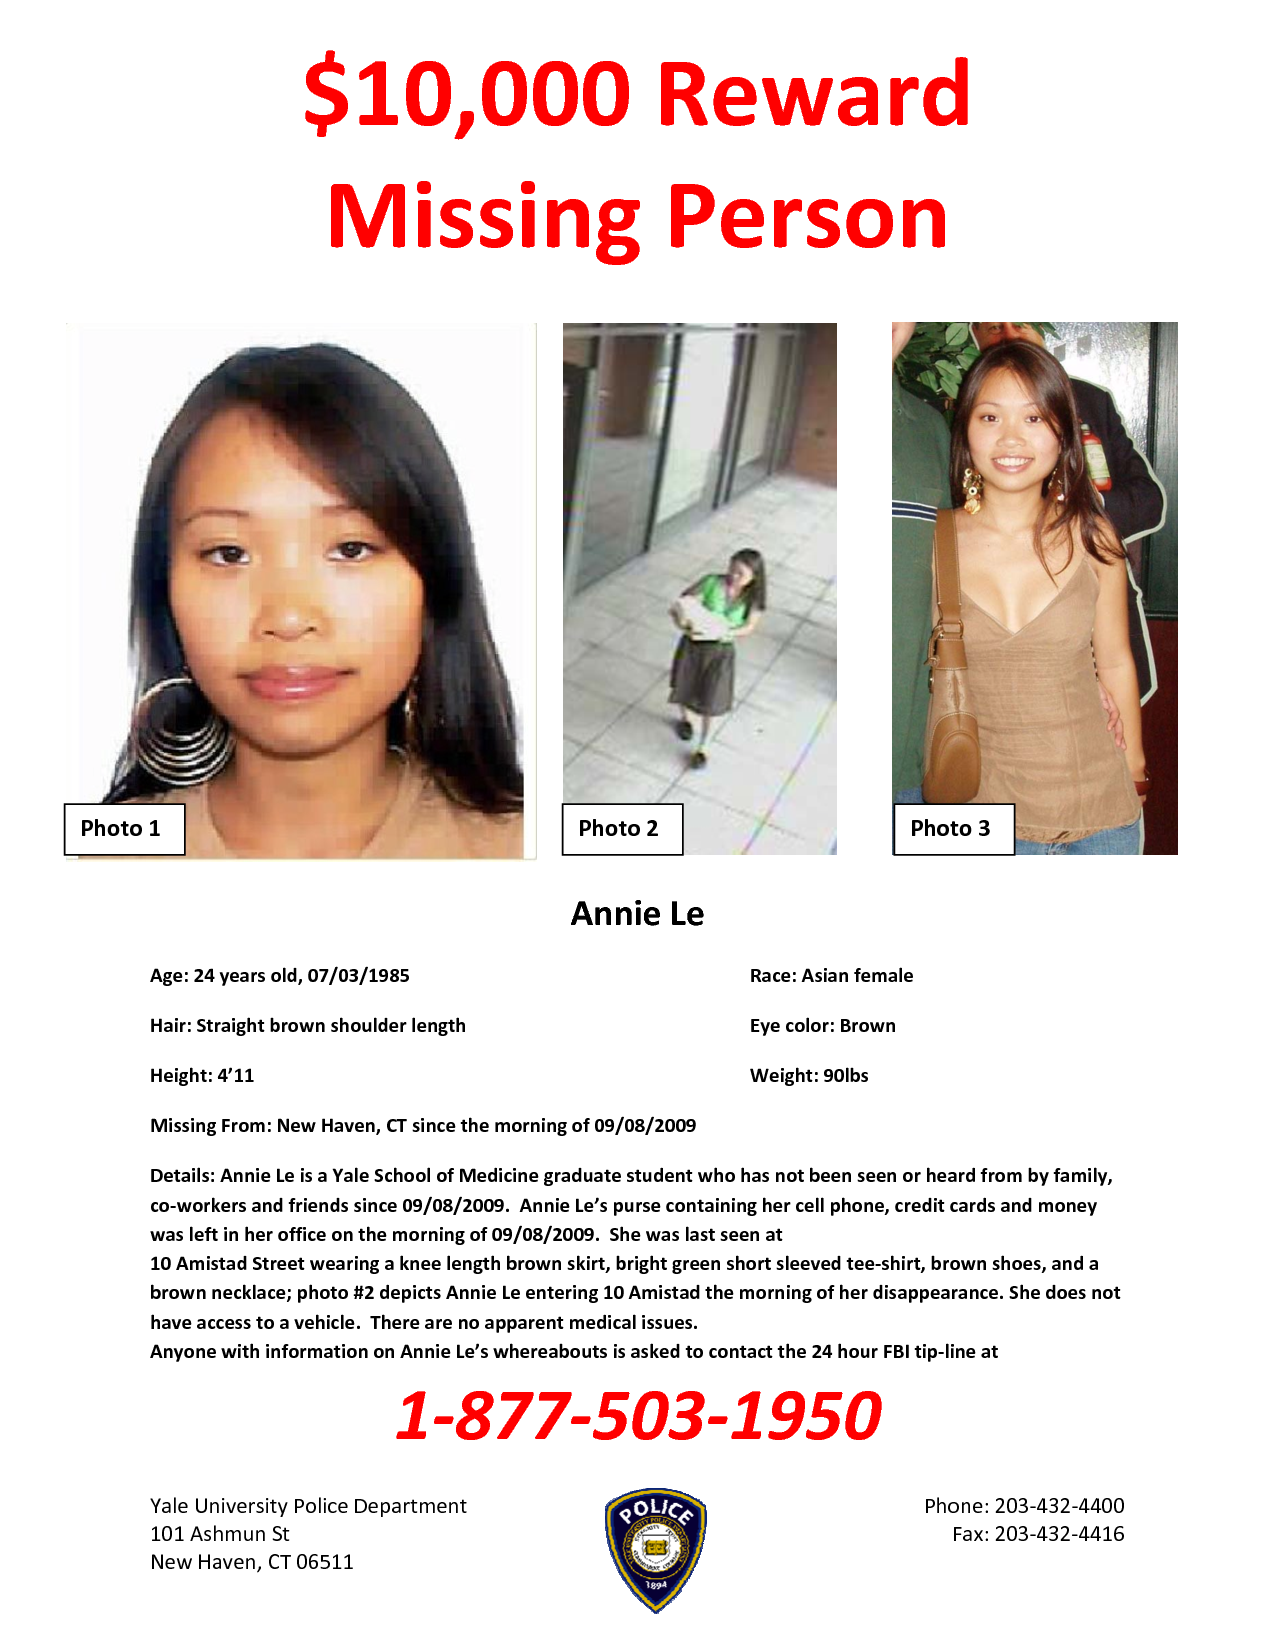 Recent missing persons | 10000 Reward Missing Person ...